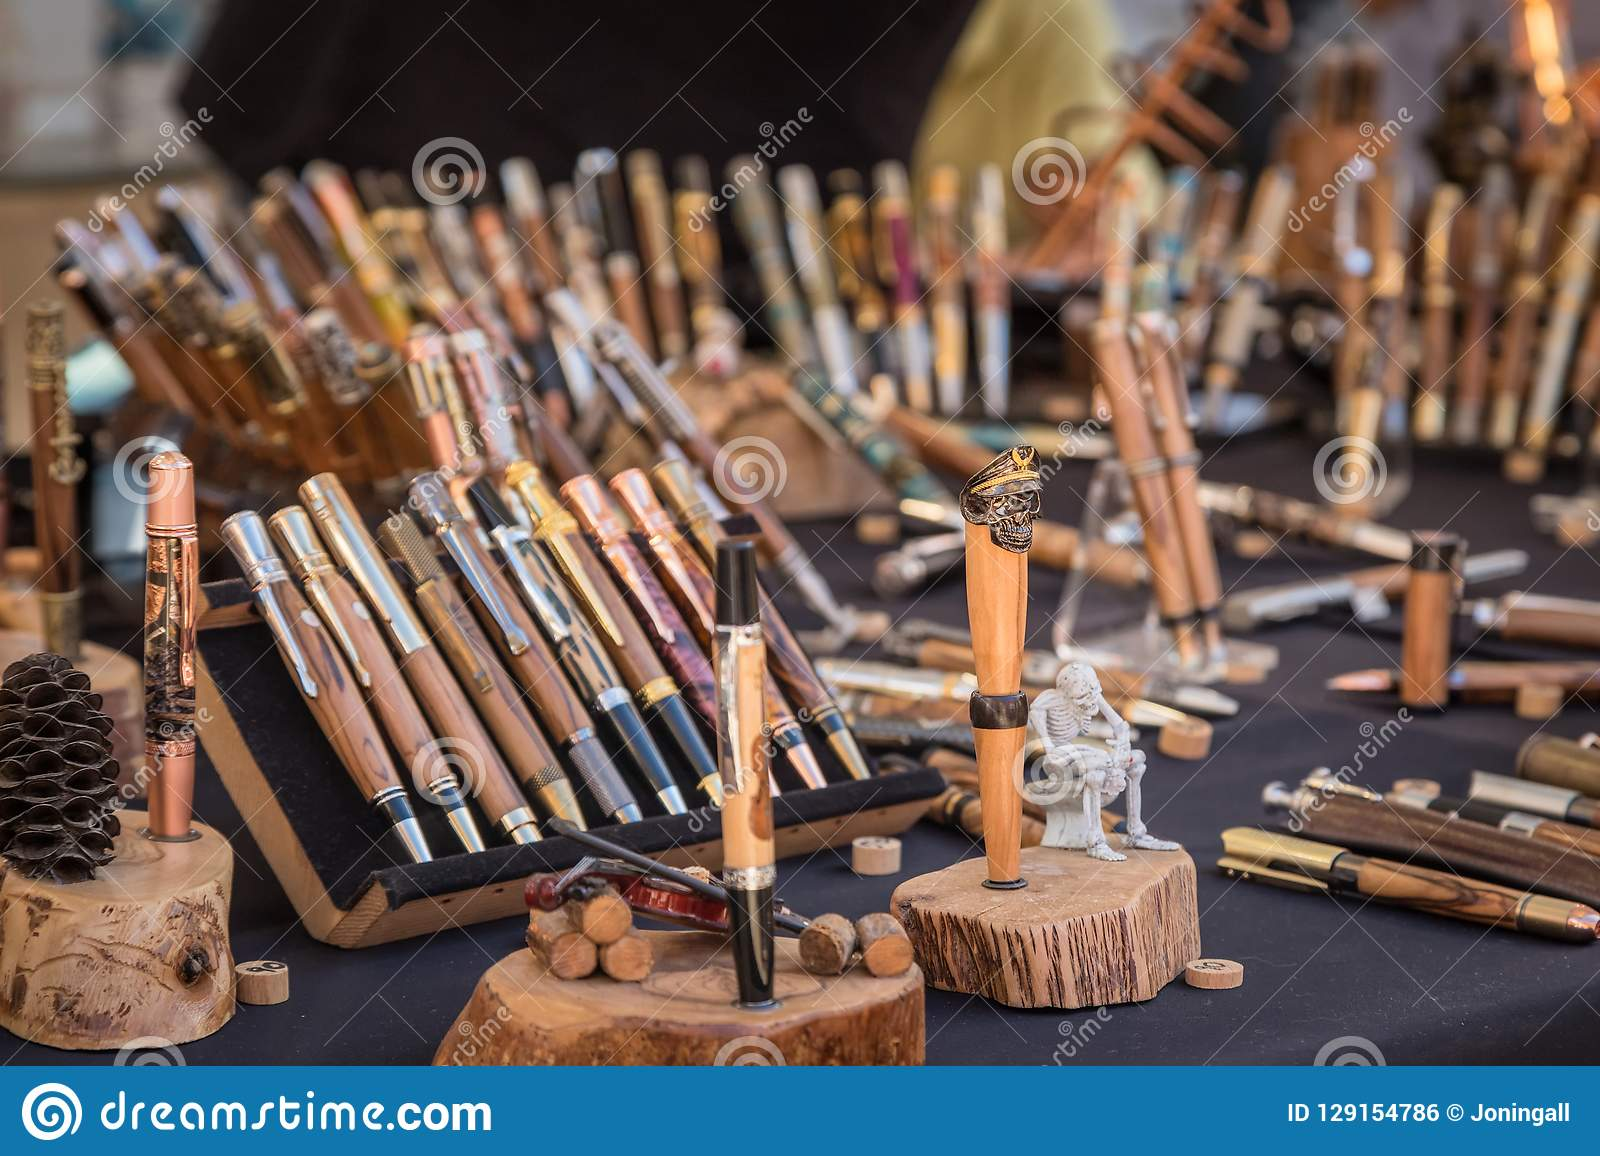 Wooden Pens For Sale At Artisan Market In Ile Rousse Editorial Photo